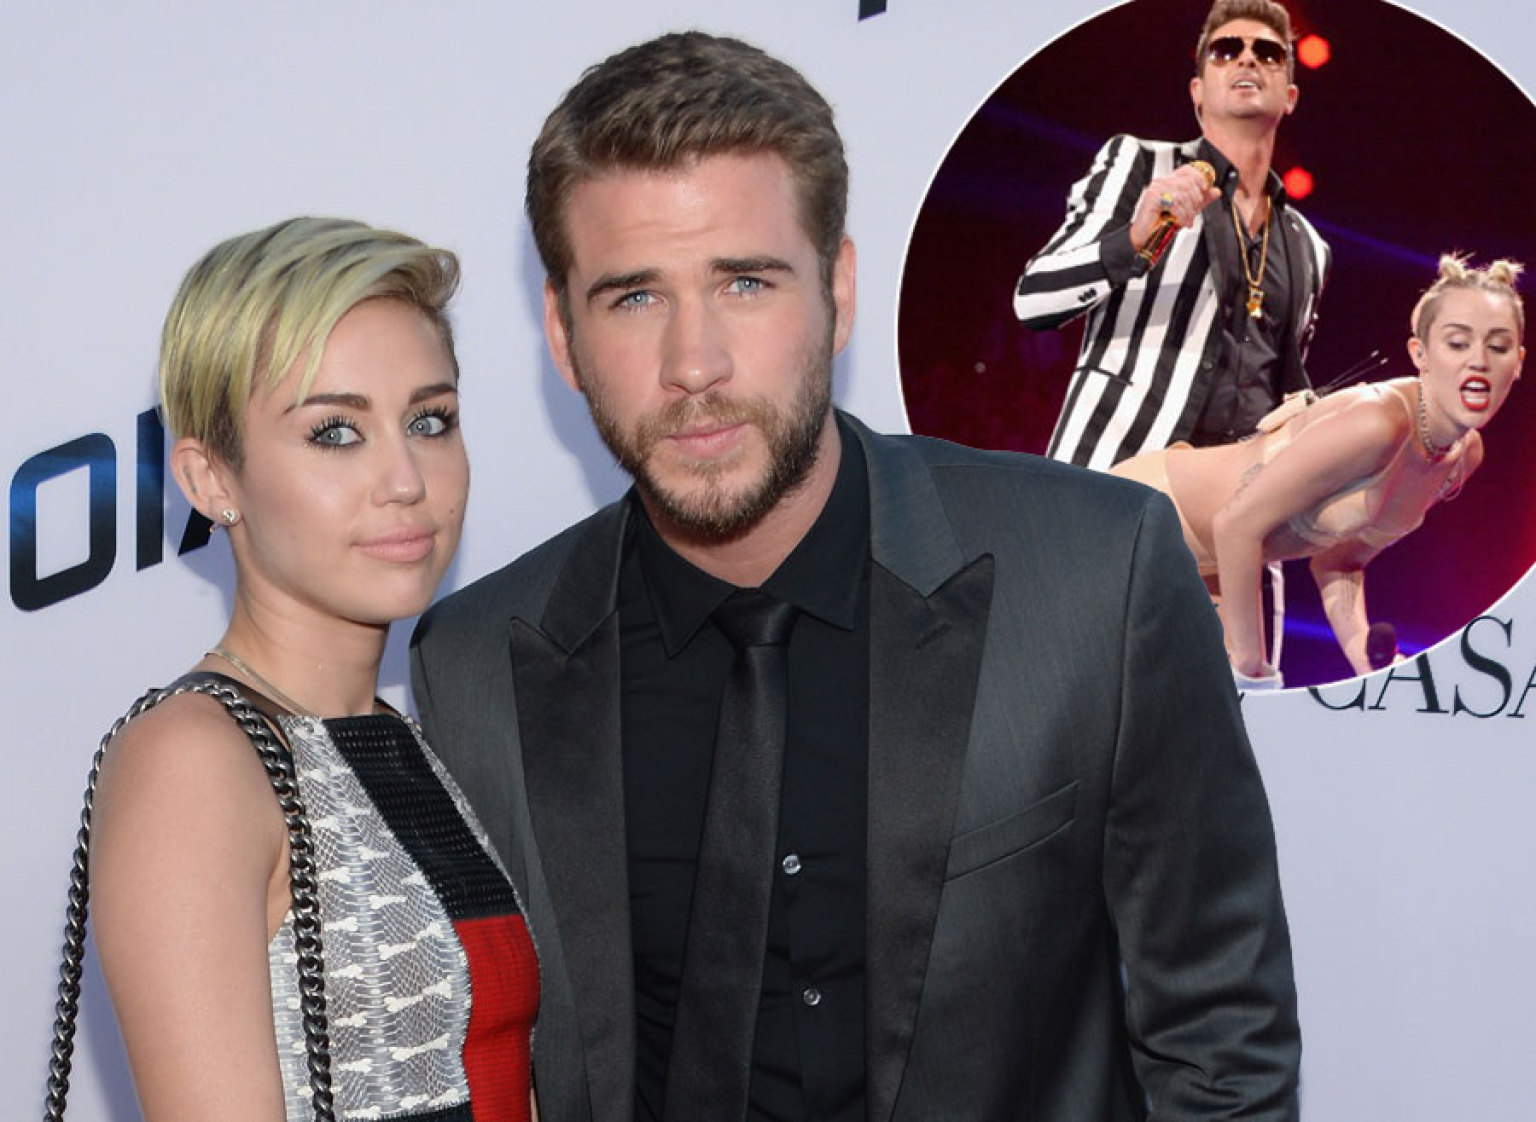 liam hemsworth dating now They say timing is everythingand that seems to be the case for miley cyrus and liam hemsworth e news previously reported that the two have reconciled and are engaged once again after splitting a few years ago, and an insider is sharing why the couple's relationship is stronger now than it ever.